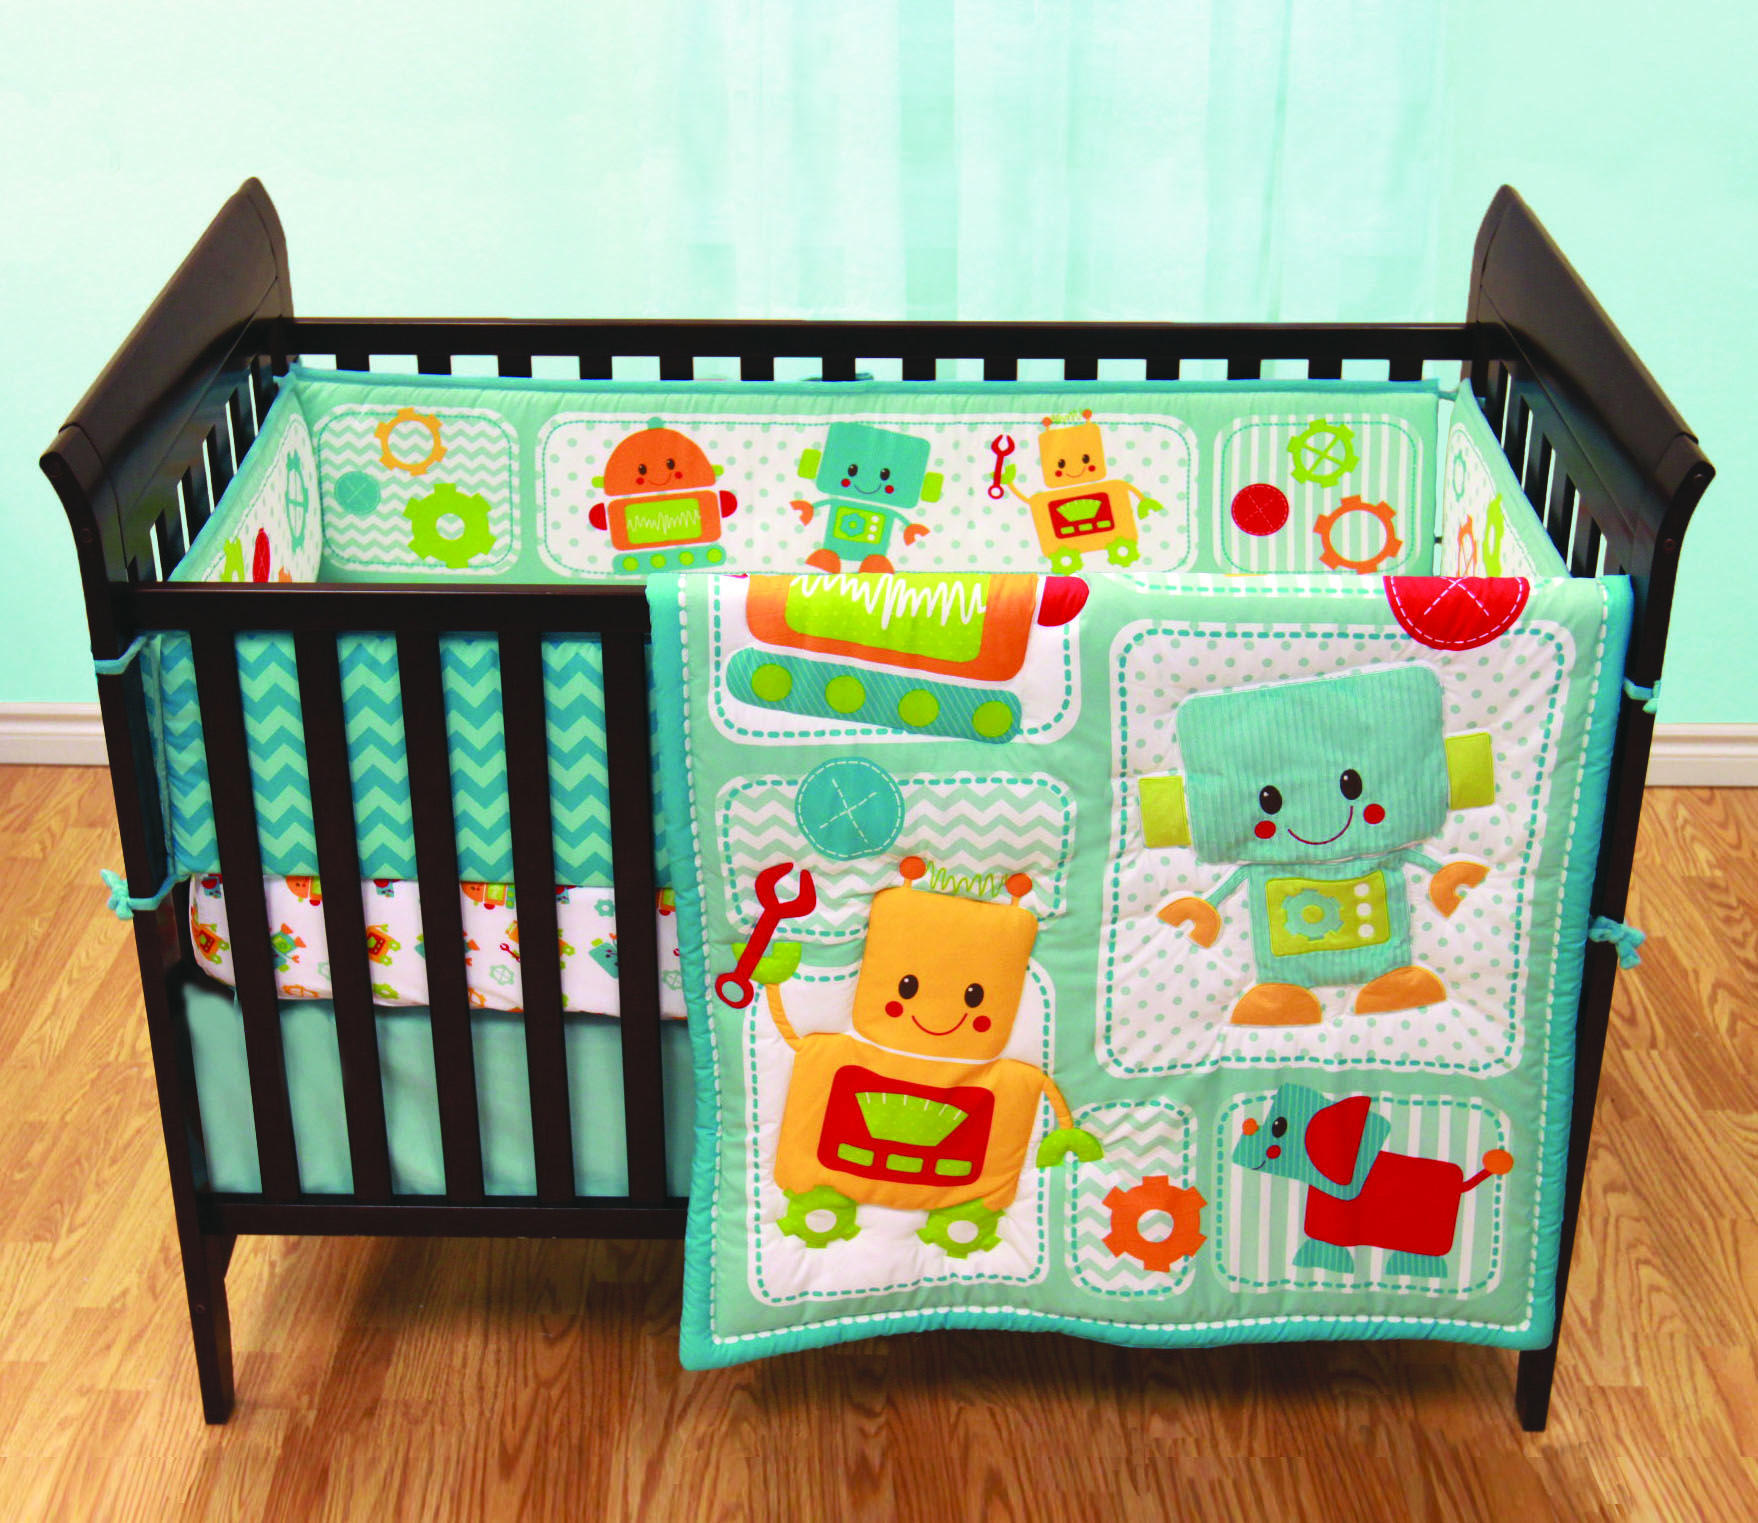 baby s first by nemcor peek a bot crib set can be found at walmart baby s first by nemcor peek a bot crib set can be found at walmart sears